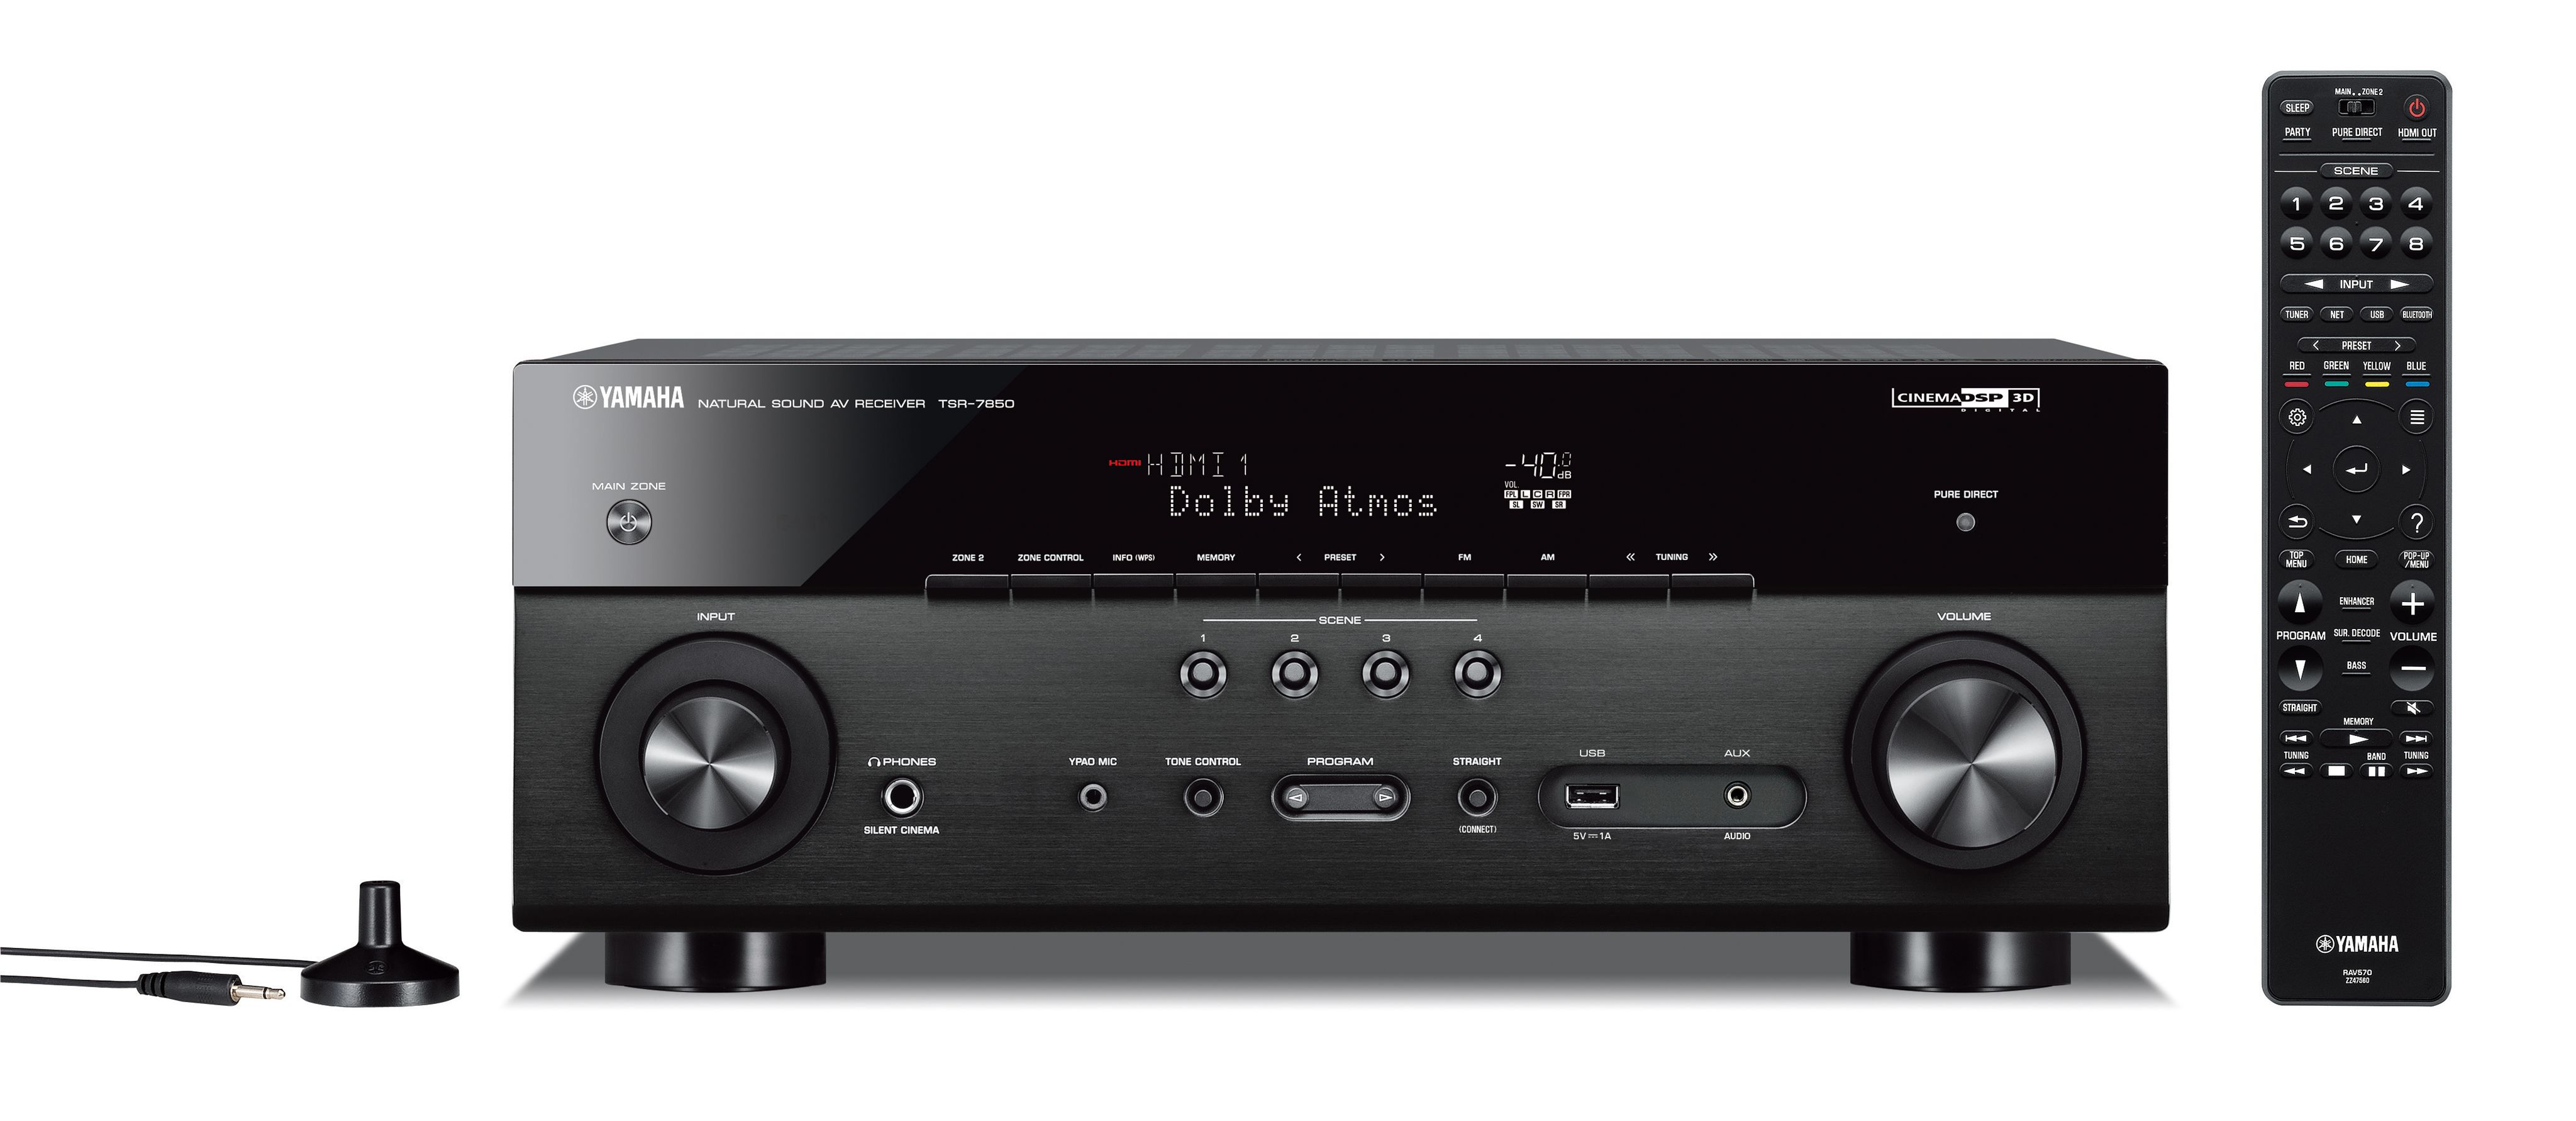 hook up multiple speakers to receiver